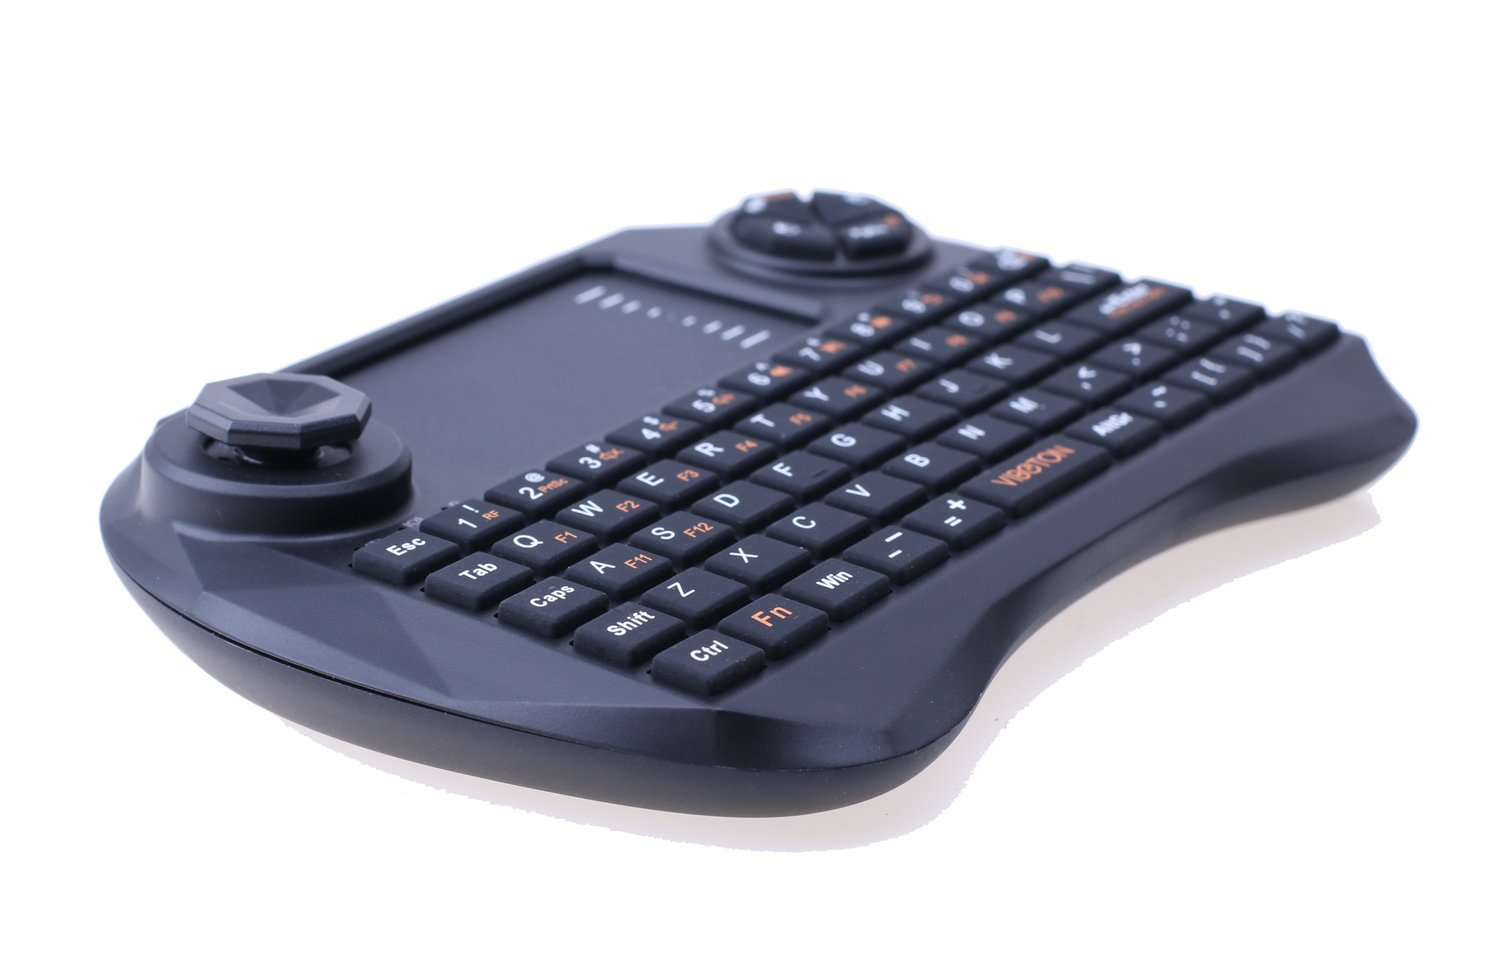 Amazon.com: C-Zone 2.4ghz Newest Viboton-x3 Mini Qwerty Wireless Keyboard +Air Mouse Handheld Remote Controller with Touchpad for Tv Box: Computers & ...